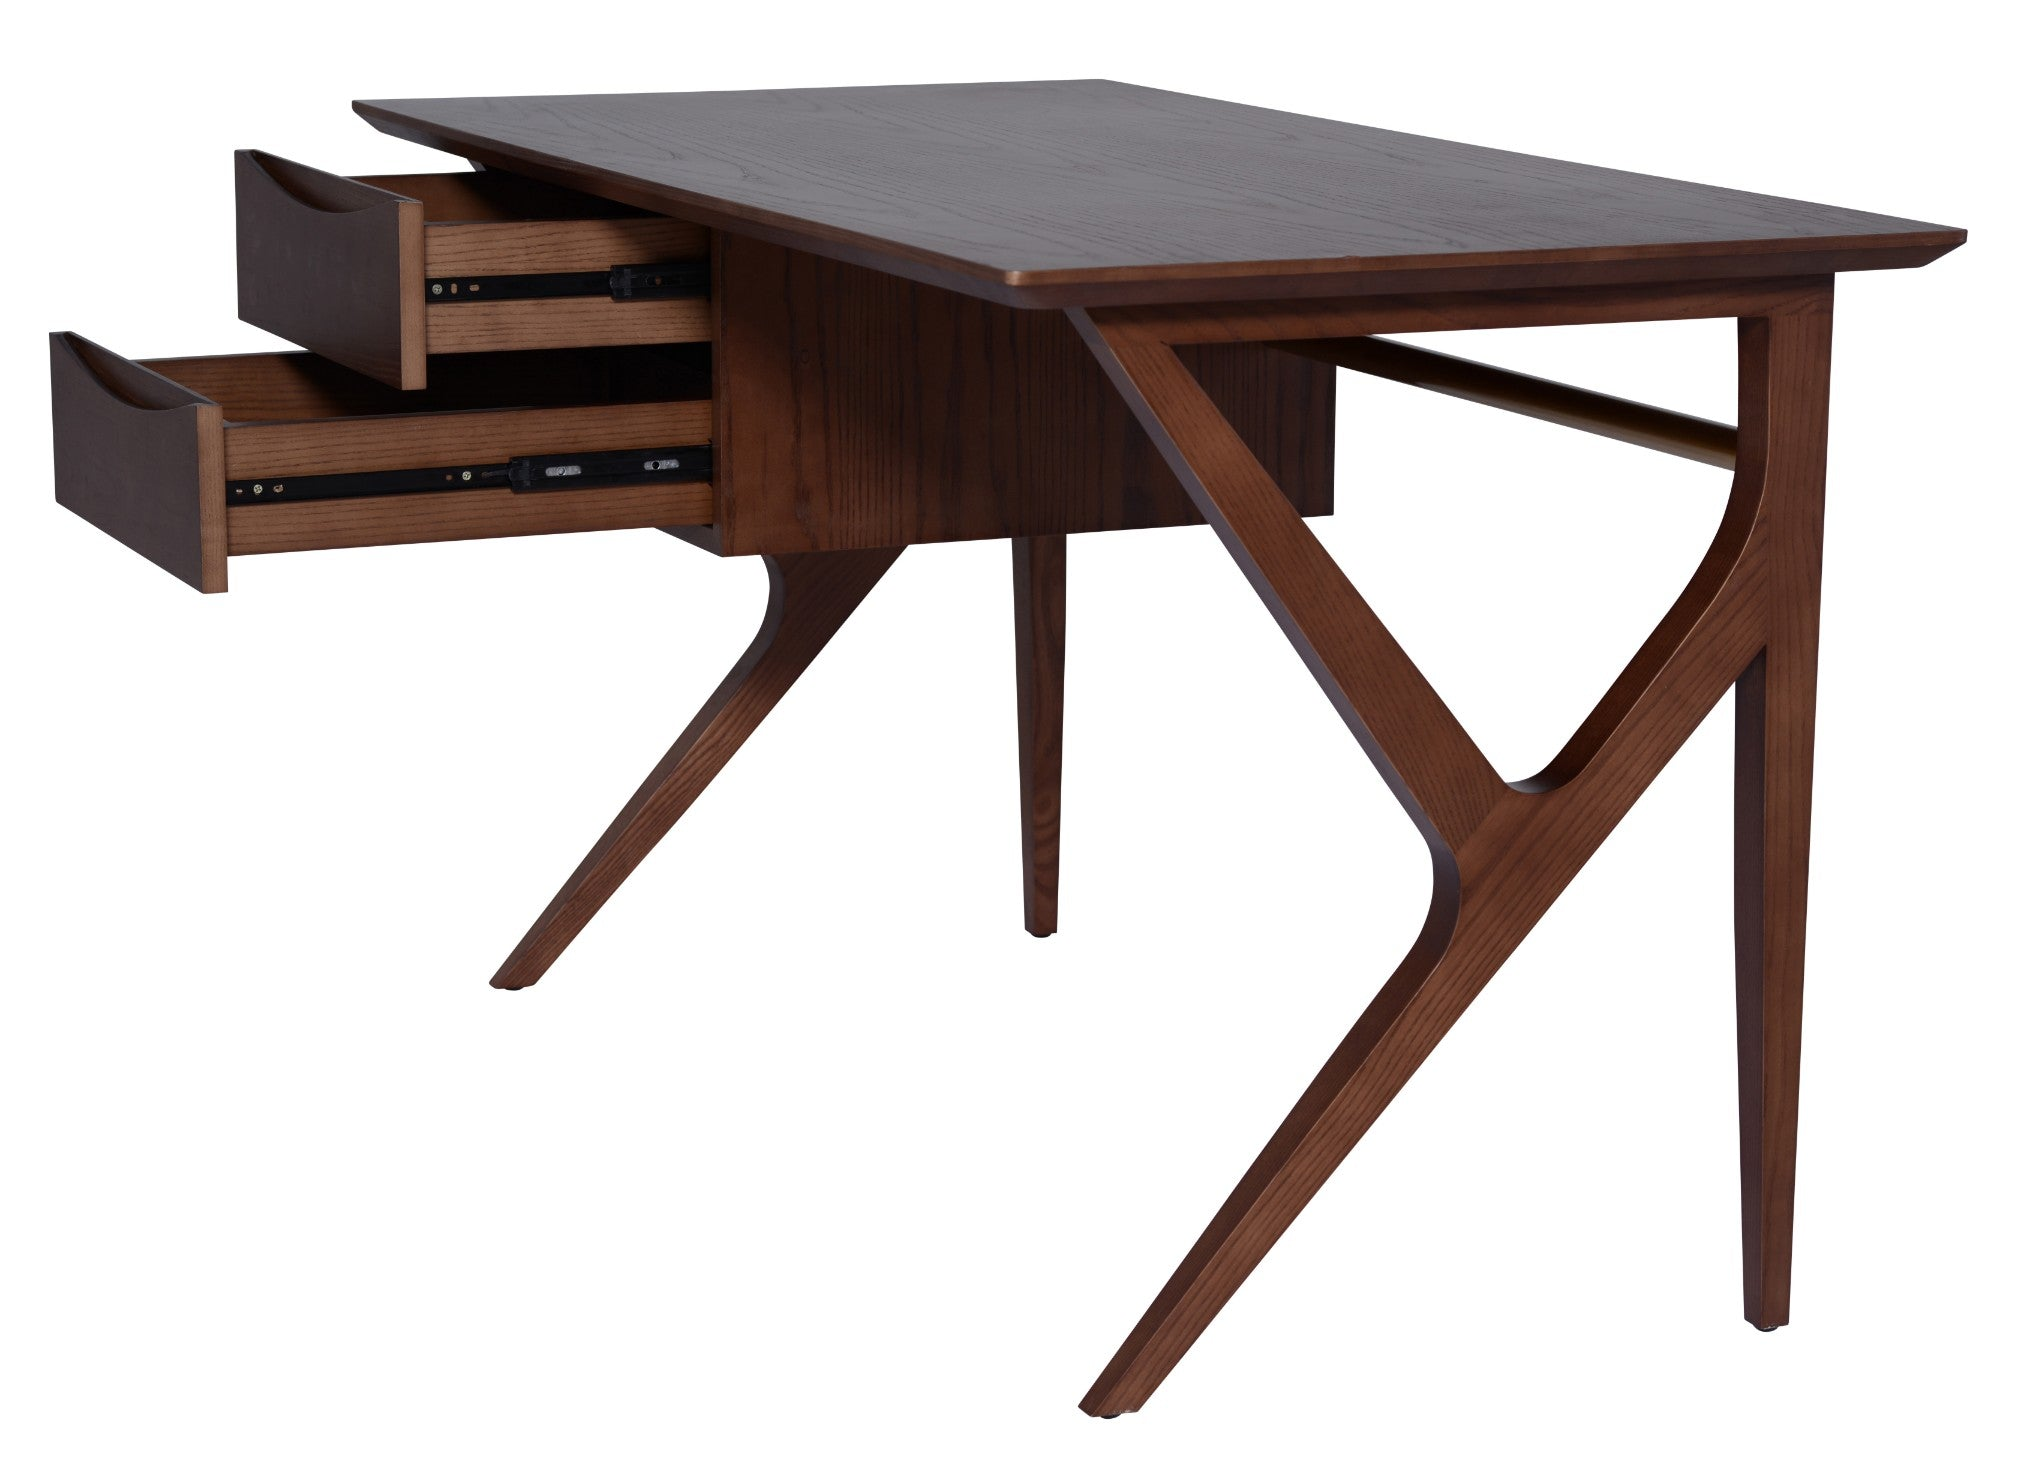 Image of: 53 Mid Century Modern Office Desk W Dark Walnut Stain Computerdesk Com